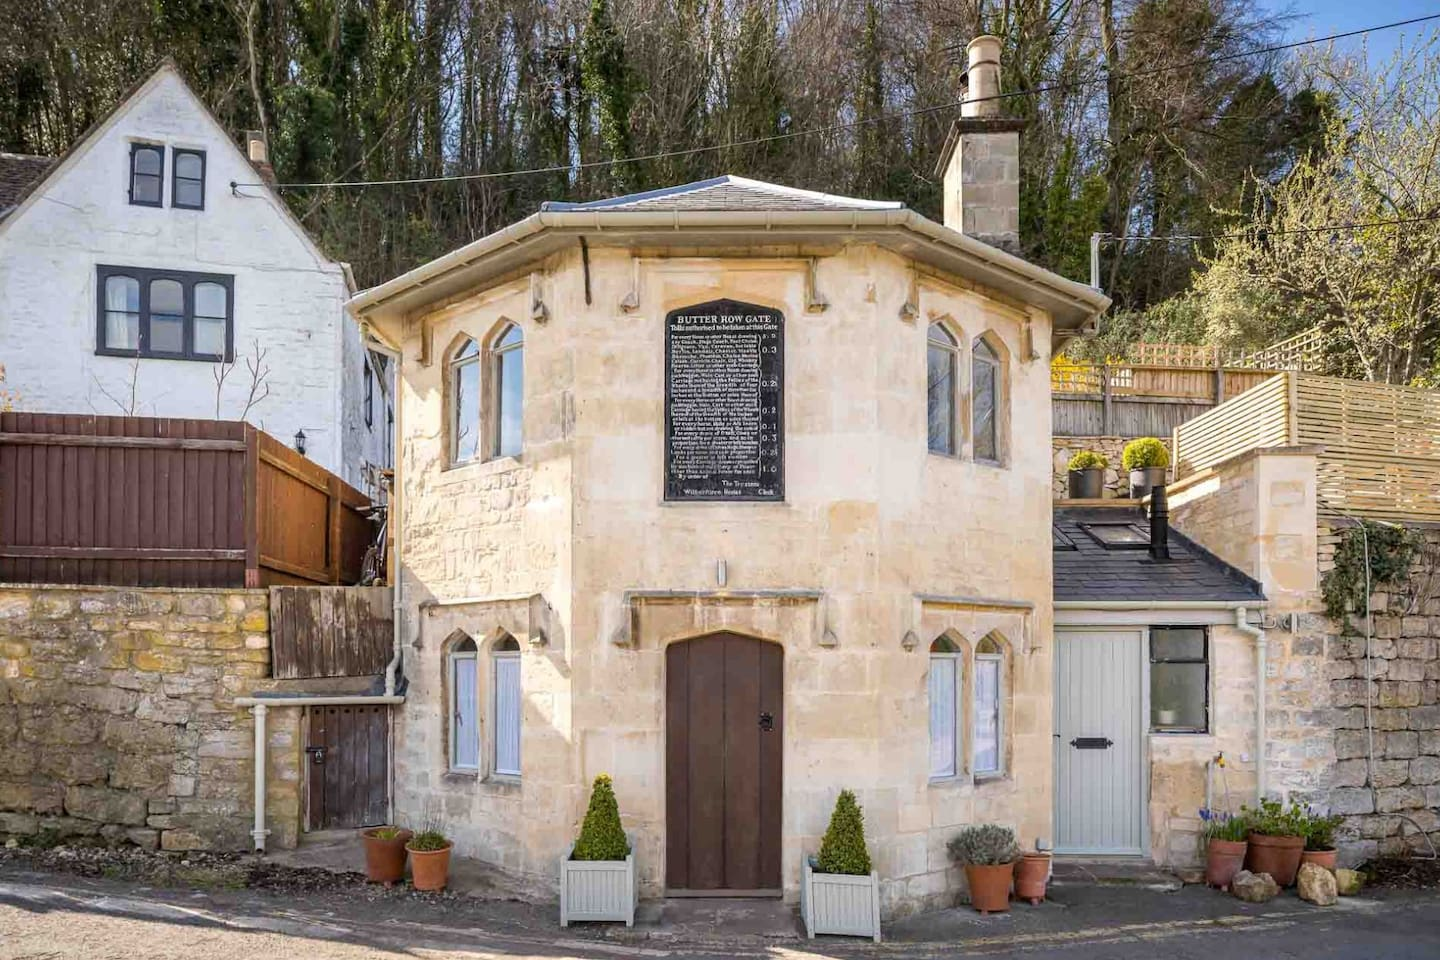 Welcome to Butterrow Gate, a stunning country retreat in Stroud